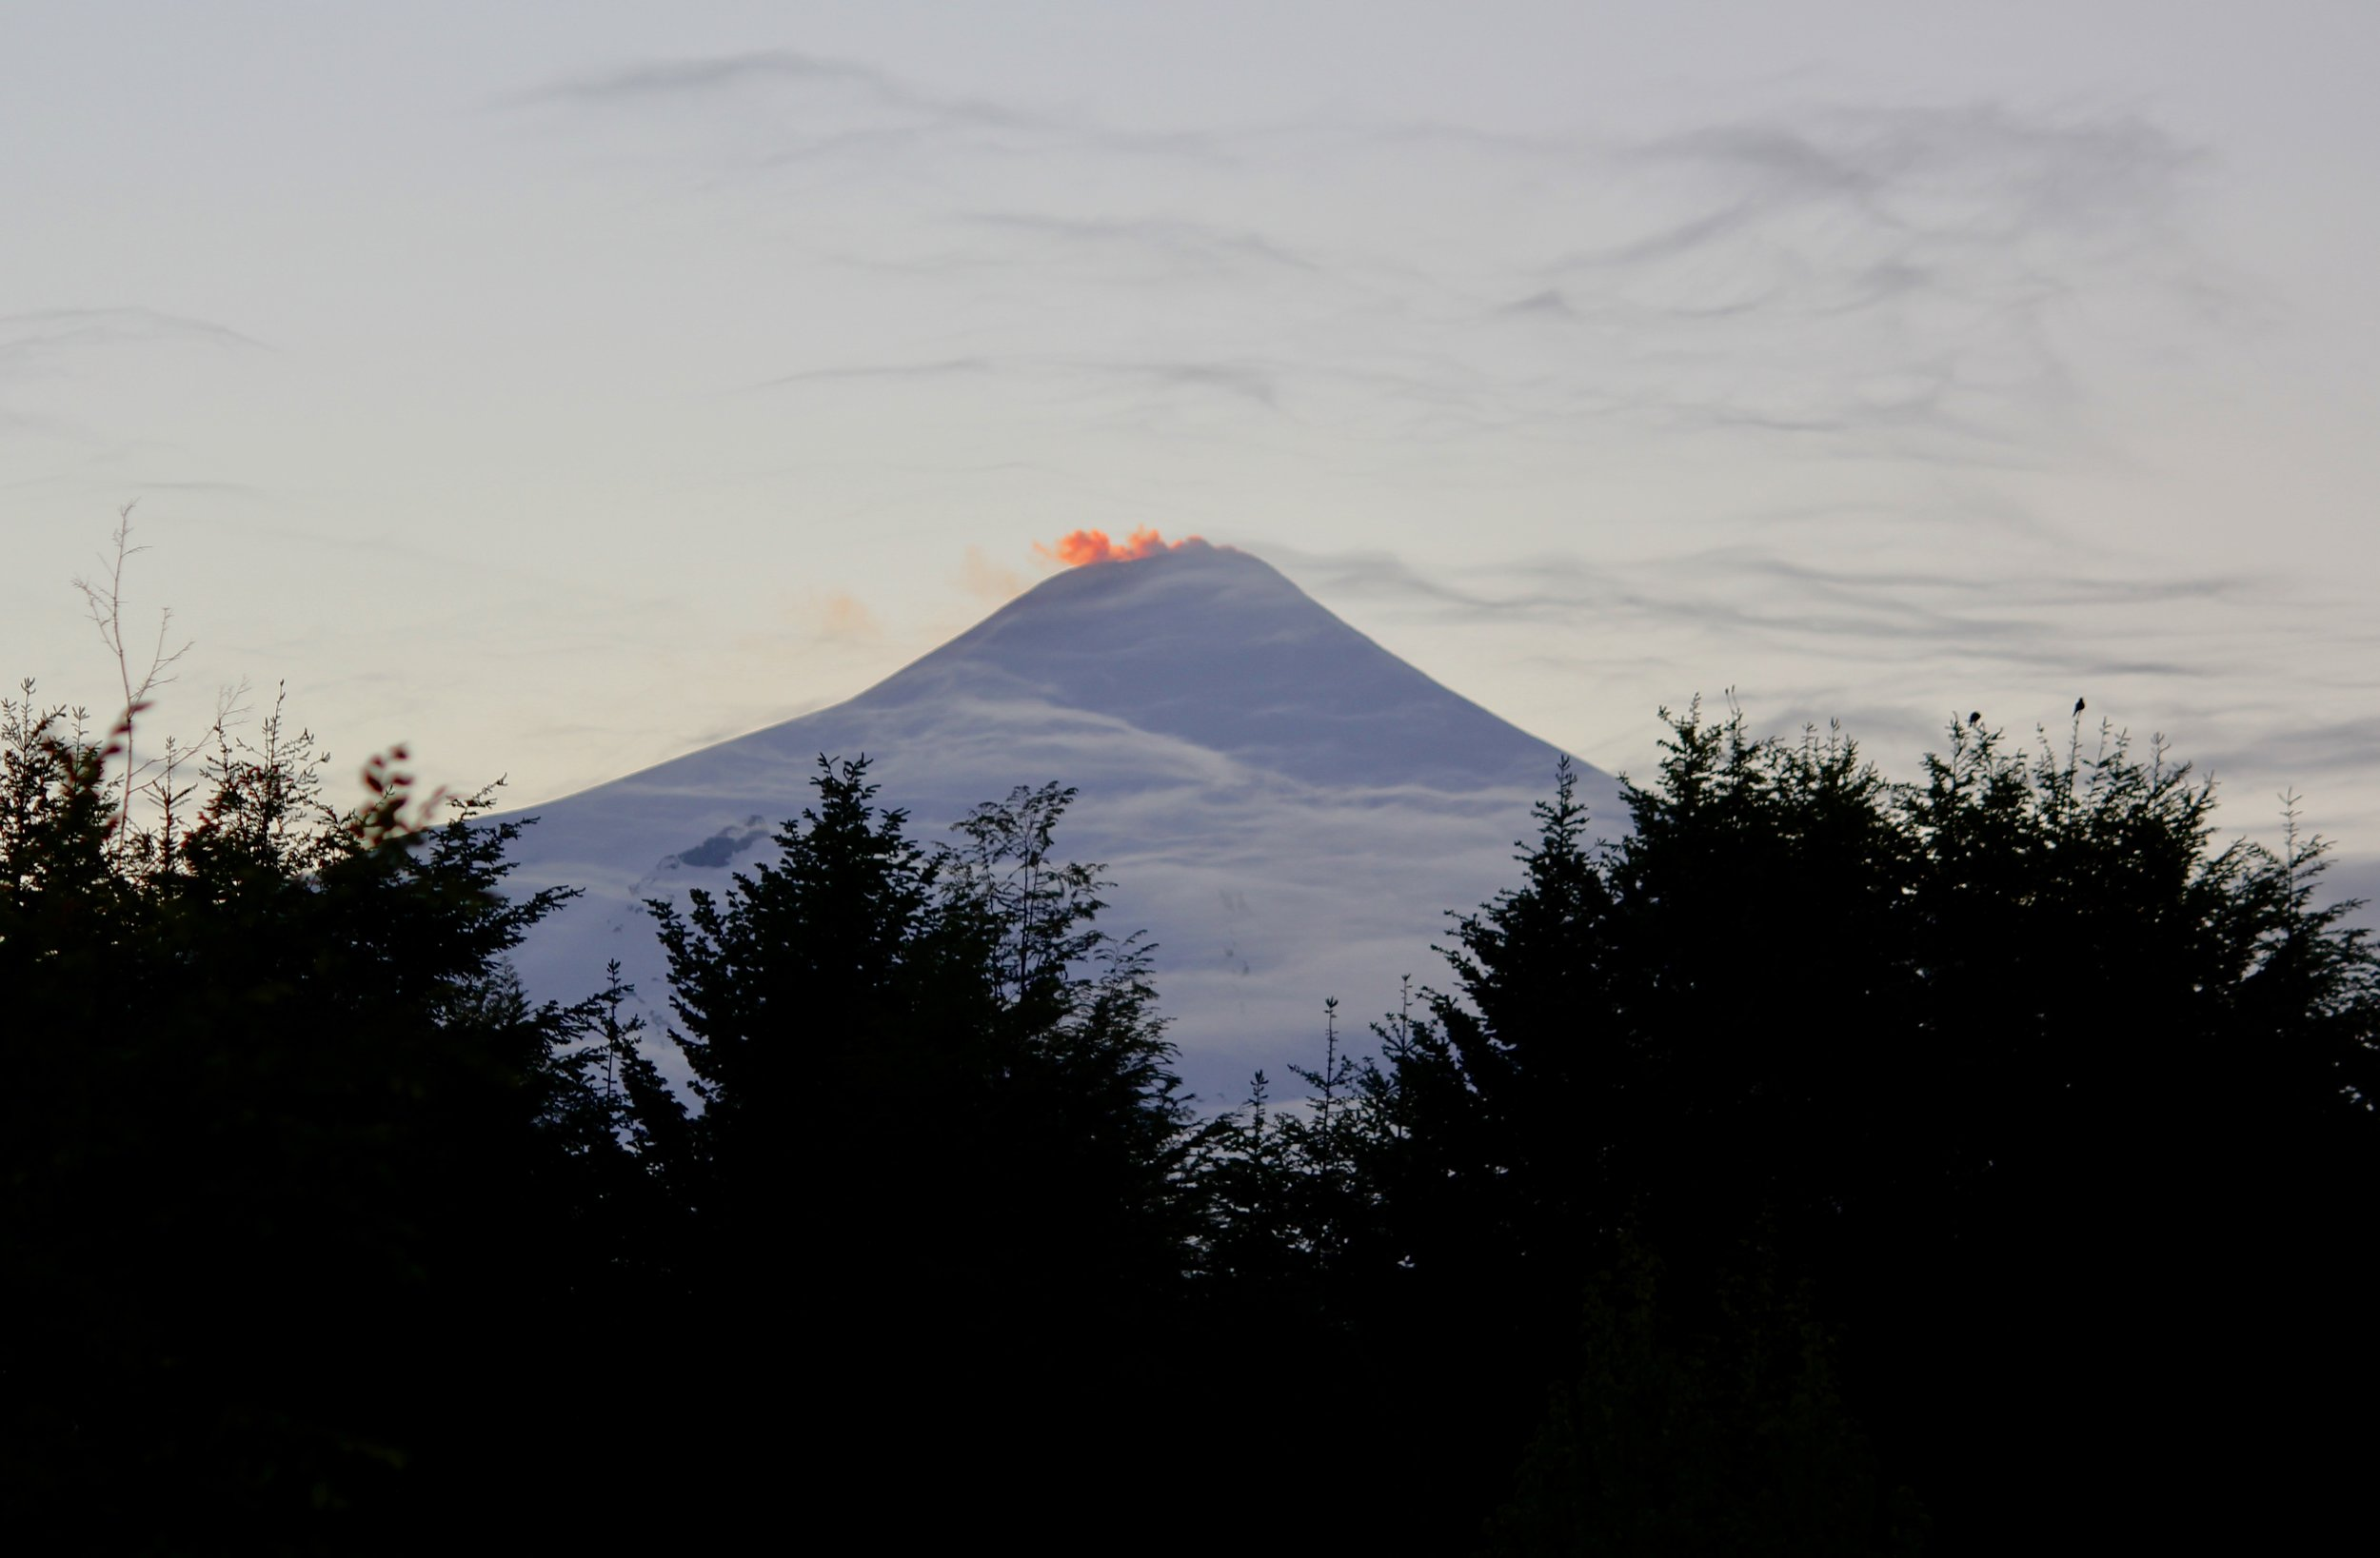 - View of Volcan Villarrica from our Airbnb in Pucon